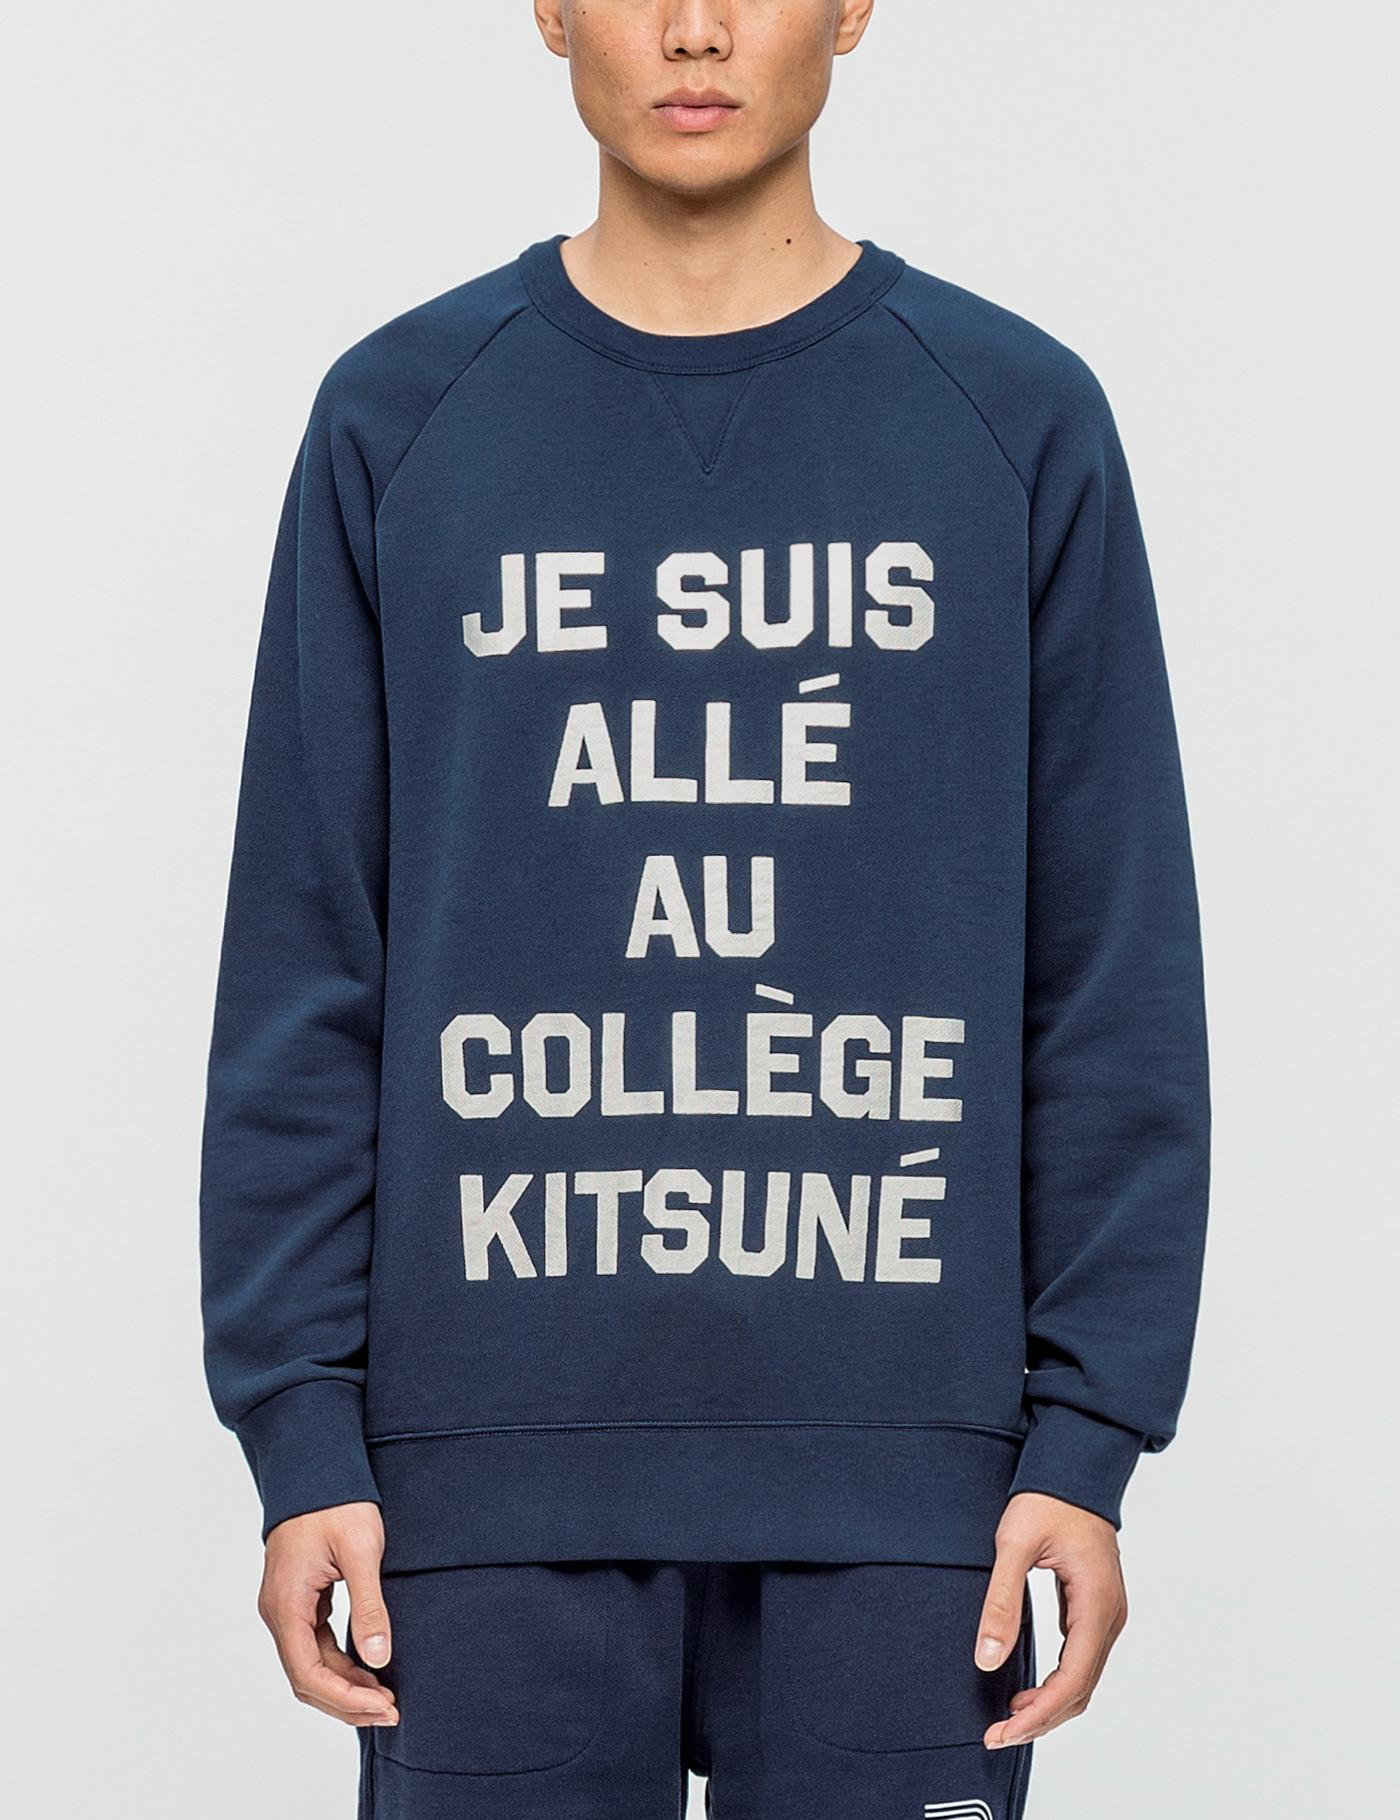 lyst maison kitsun je suis alle sweatshirt in blue for men. Black Bedroom Furniture Sets. Home Design Ideas